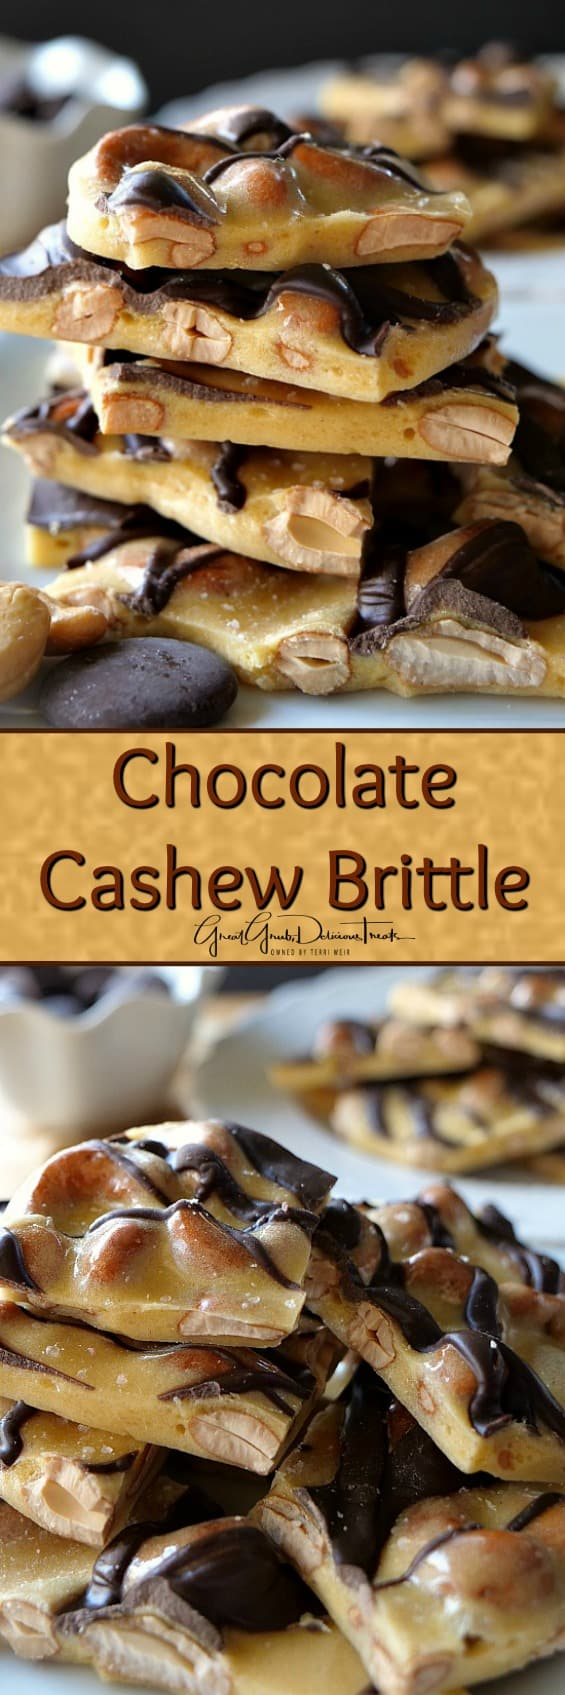 Chocolate Cashew Brittle